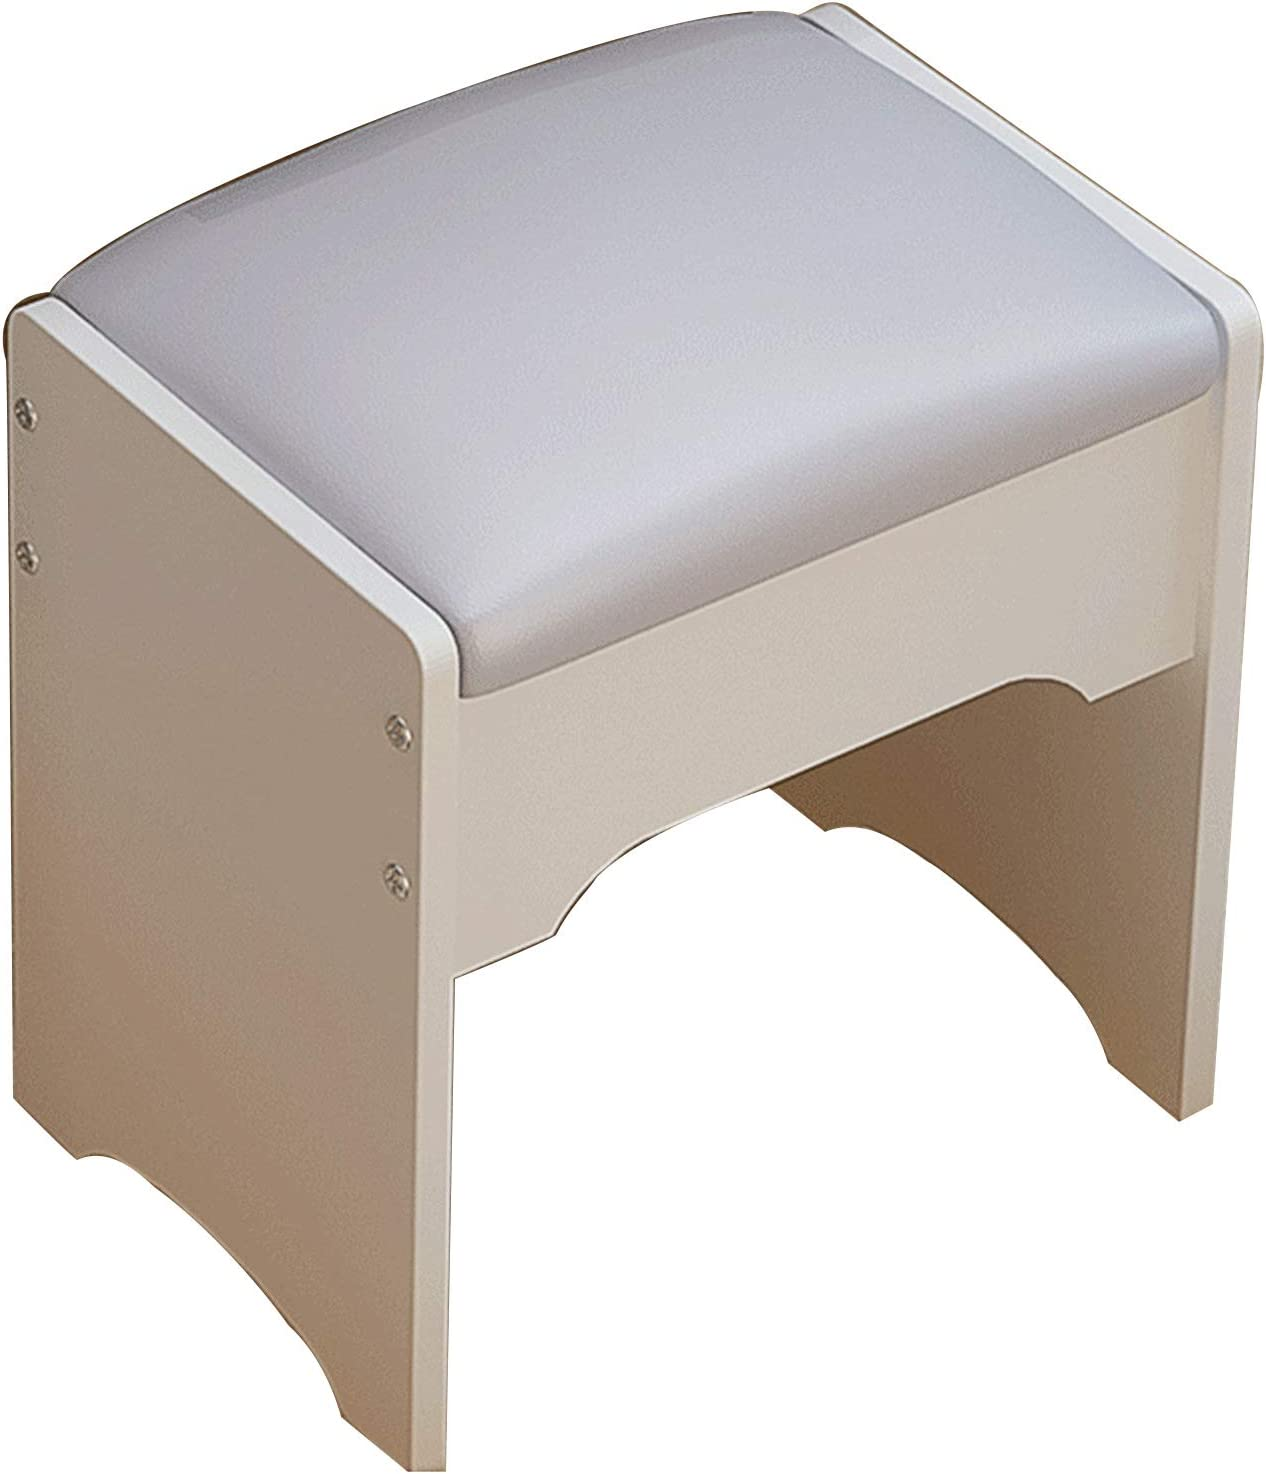 Seattle Mall Daoyuan Makeup Vanity Stool Durable Non-Slip Solid S Ranking TOP18 Wood Sturdy